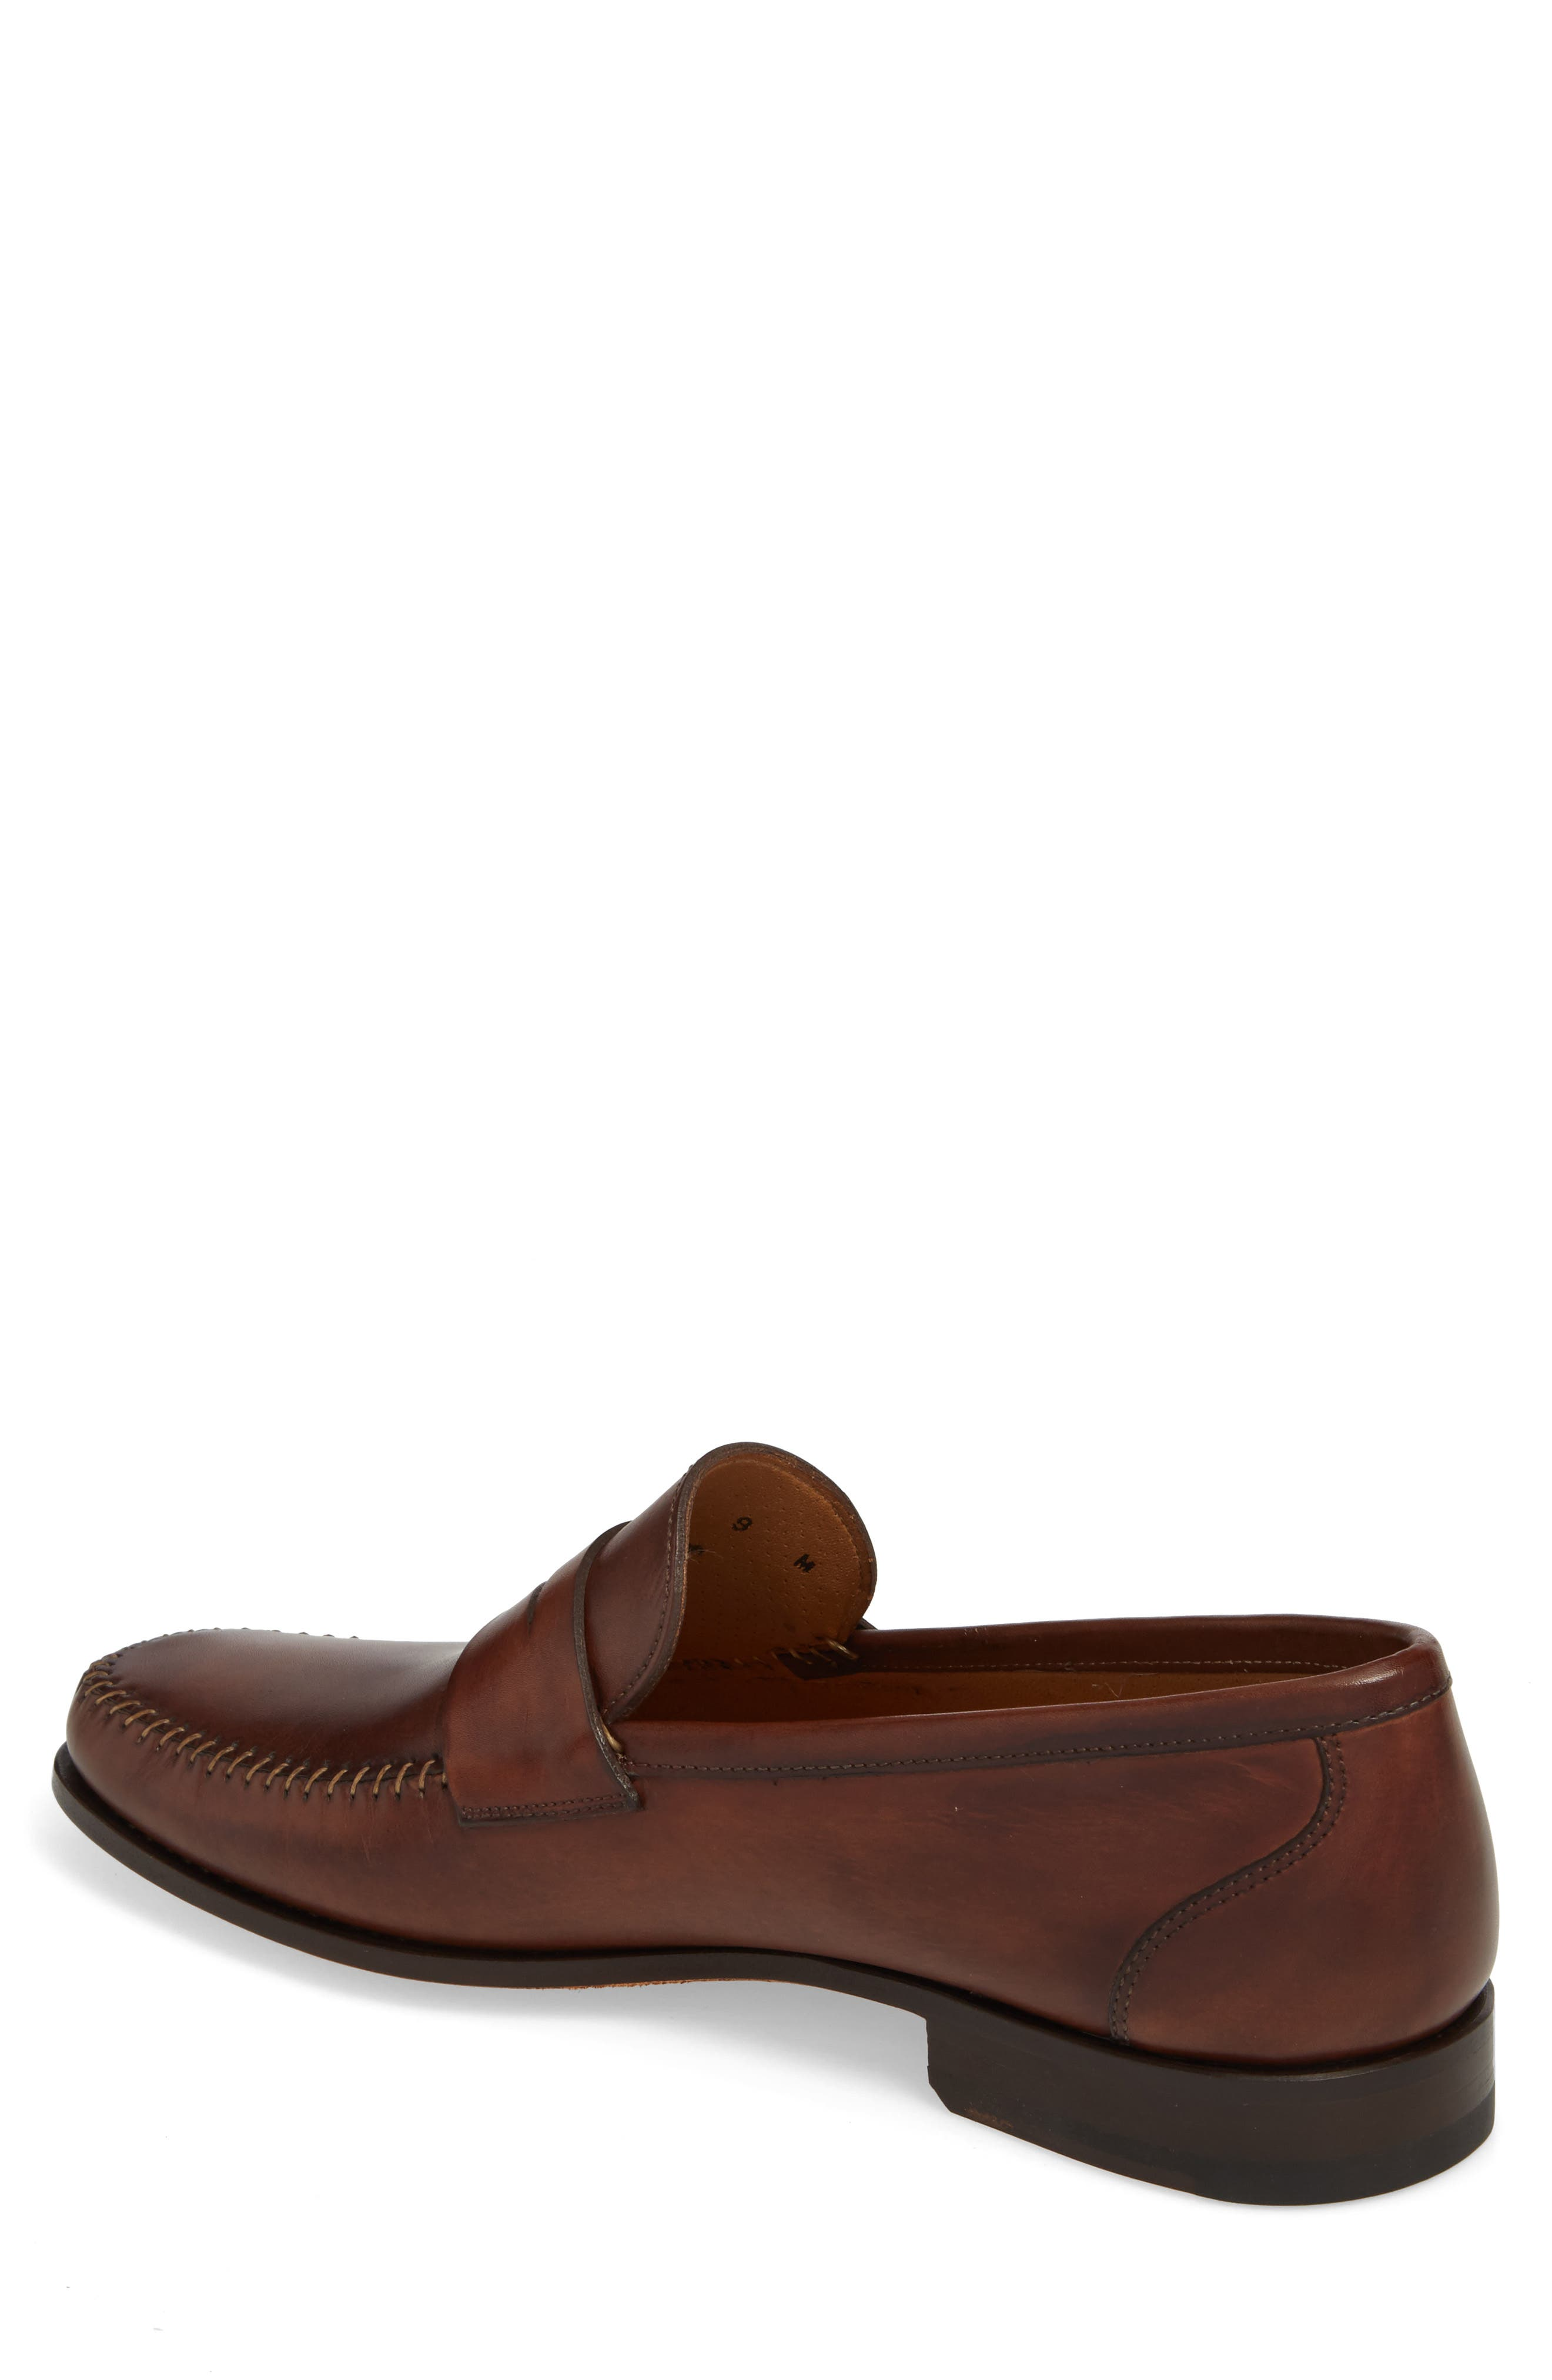 Ramos Moc Toe Penny Loafer,                             Alternate thumbnail 2, color,                             Brown Leather